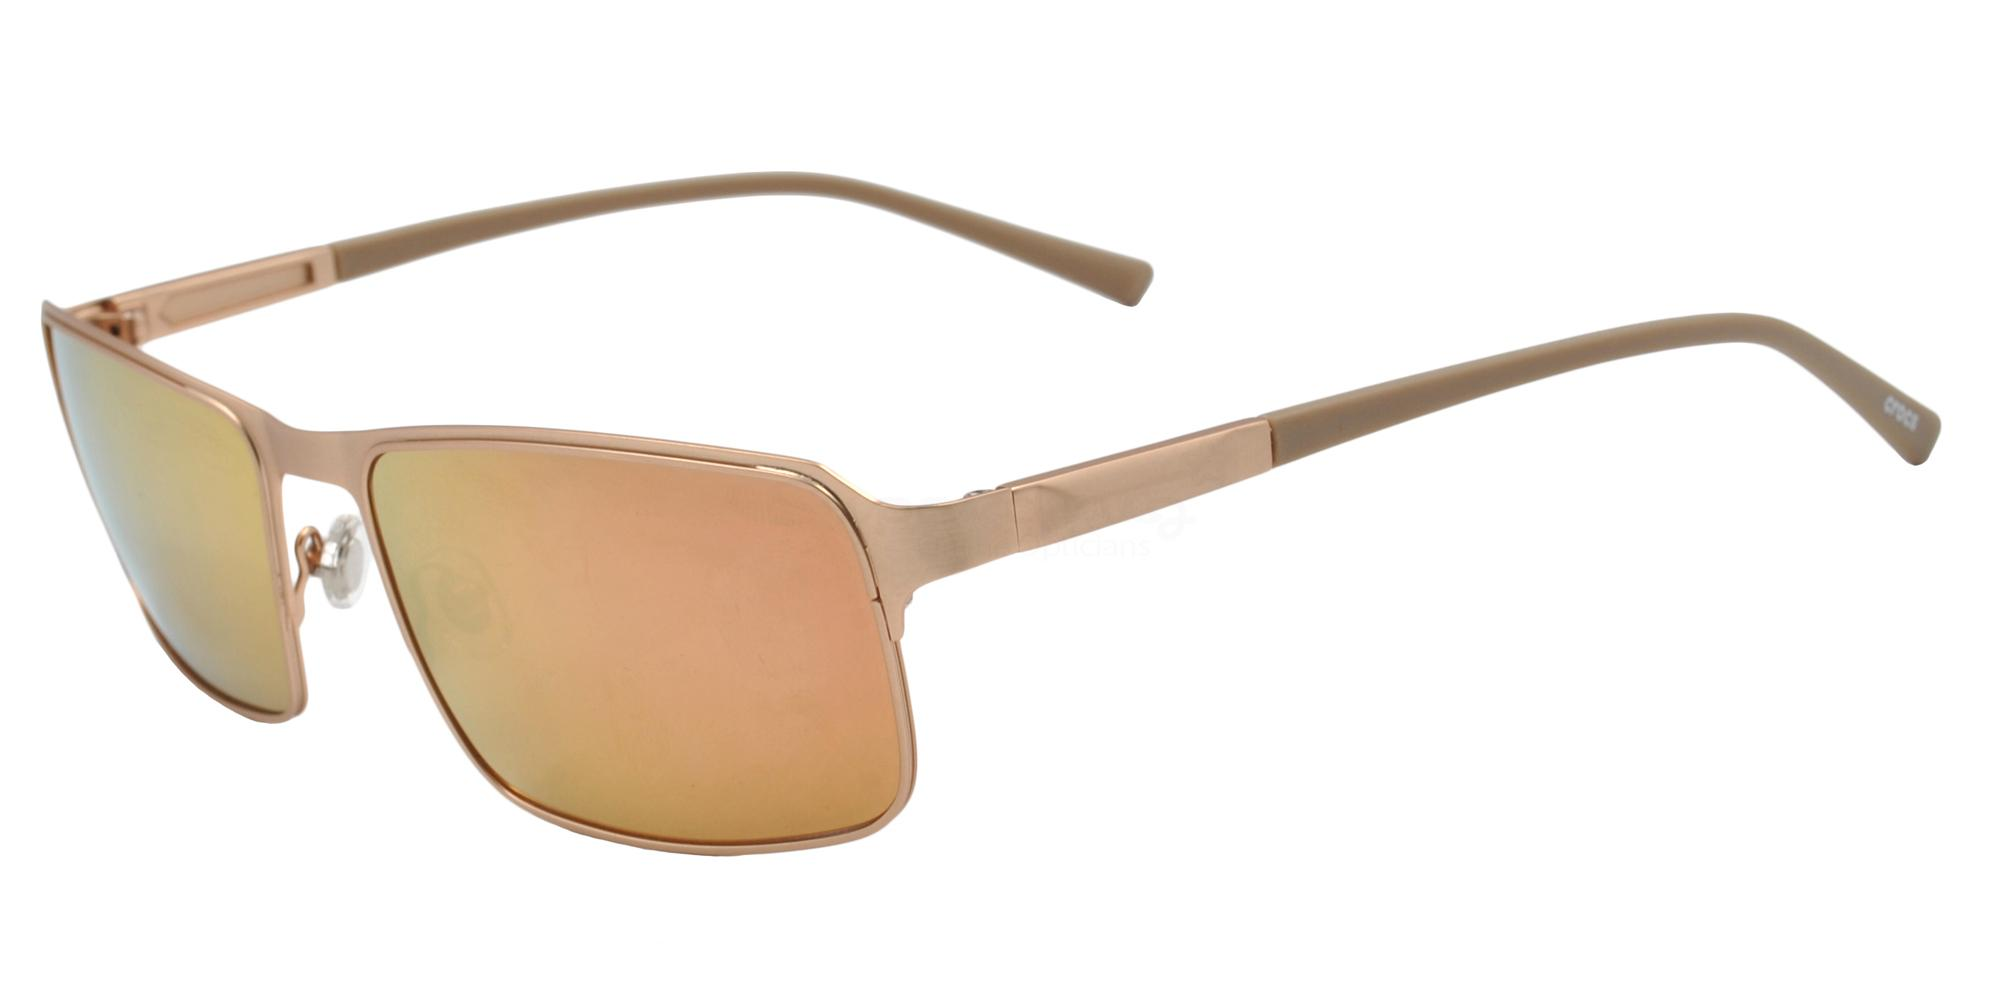 33BN CS043 Sunglasses, Crocs Eyewear